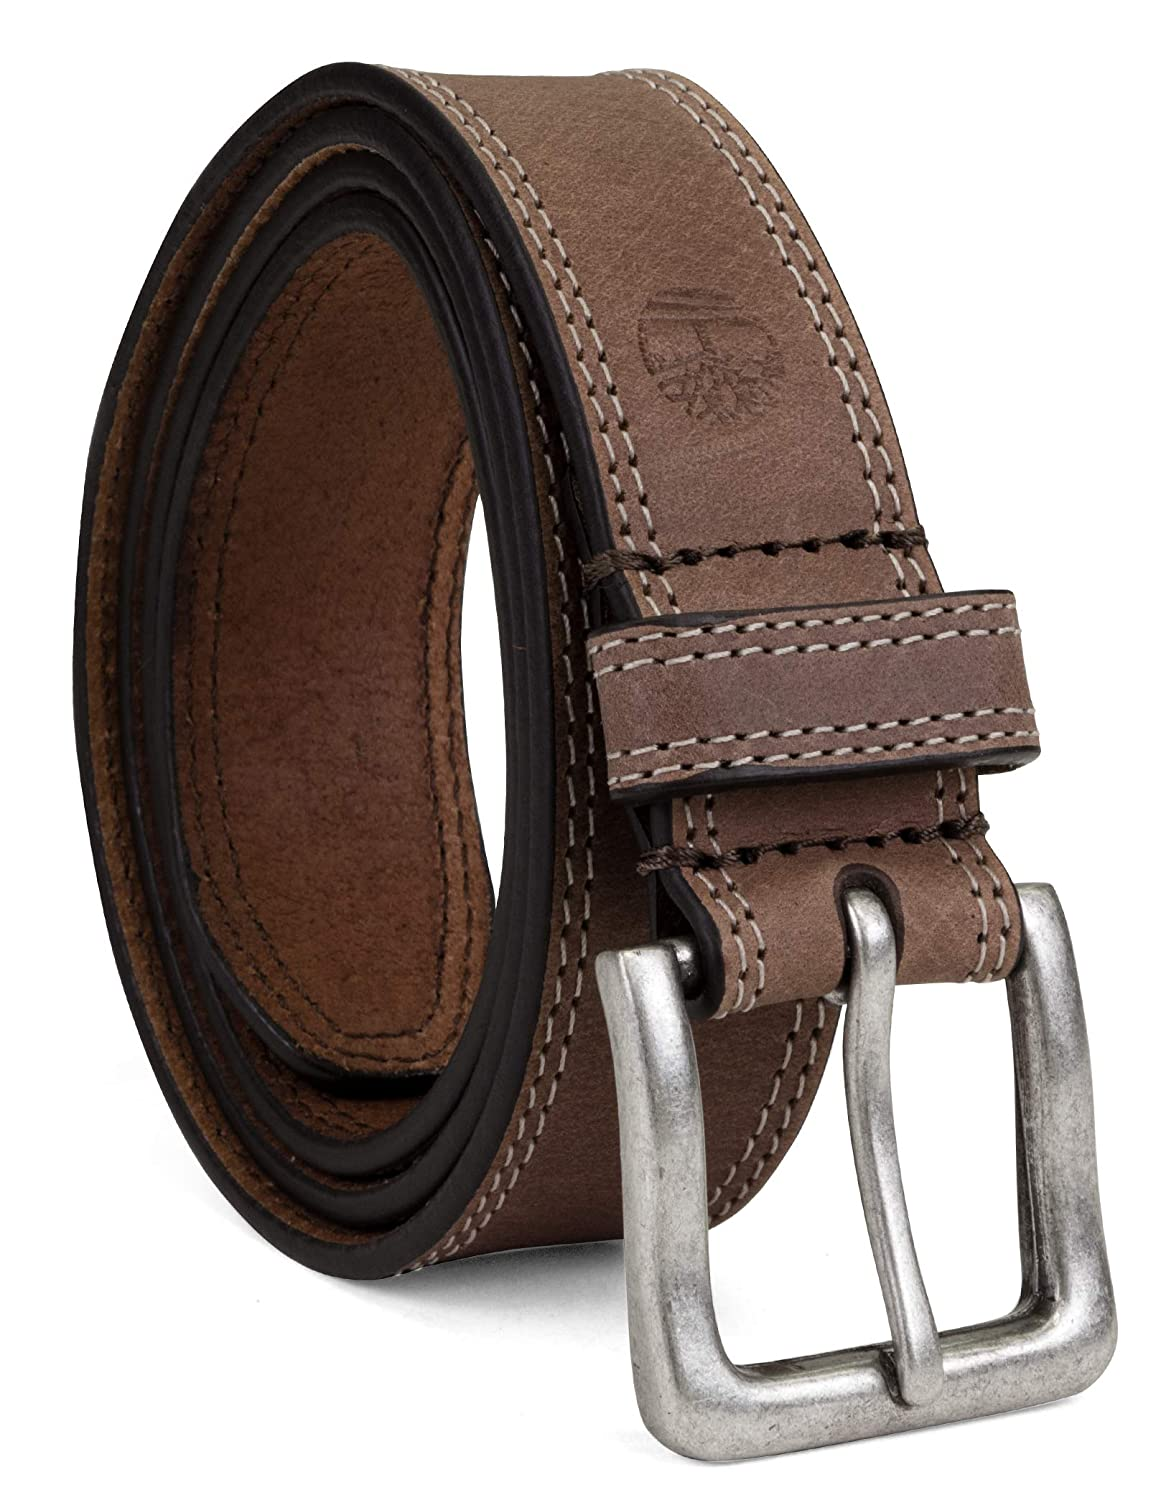 Timberland Boot Leather Belt Men/'s